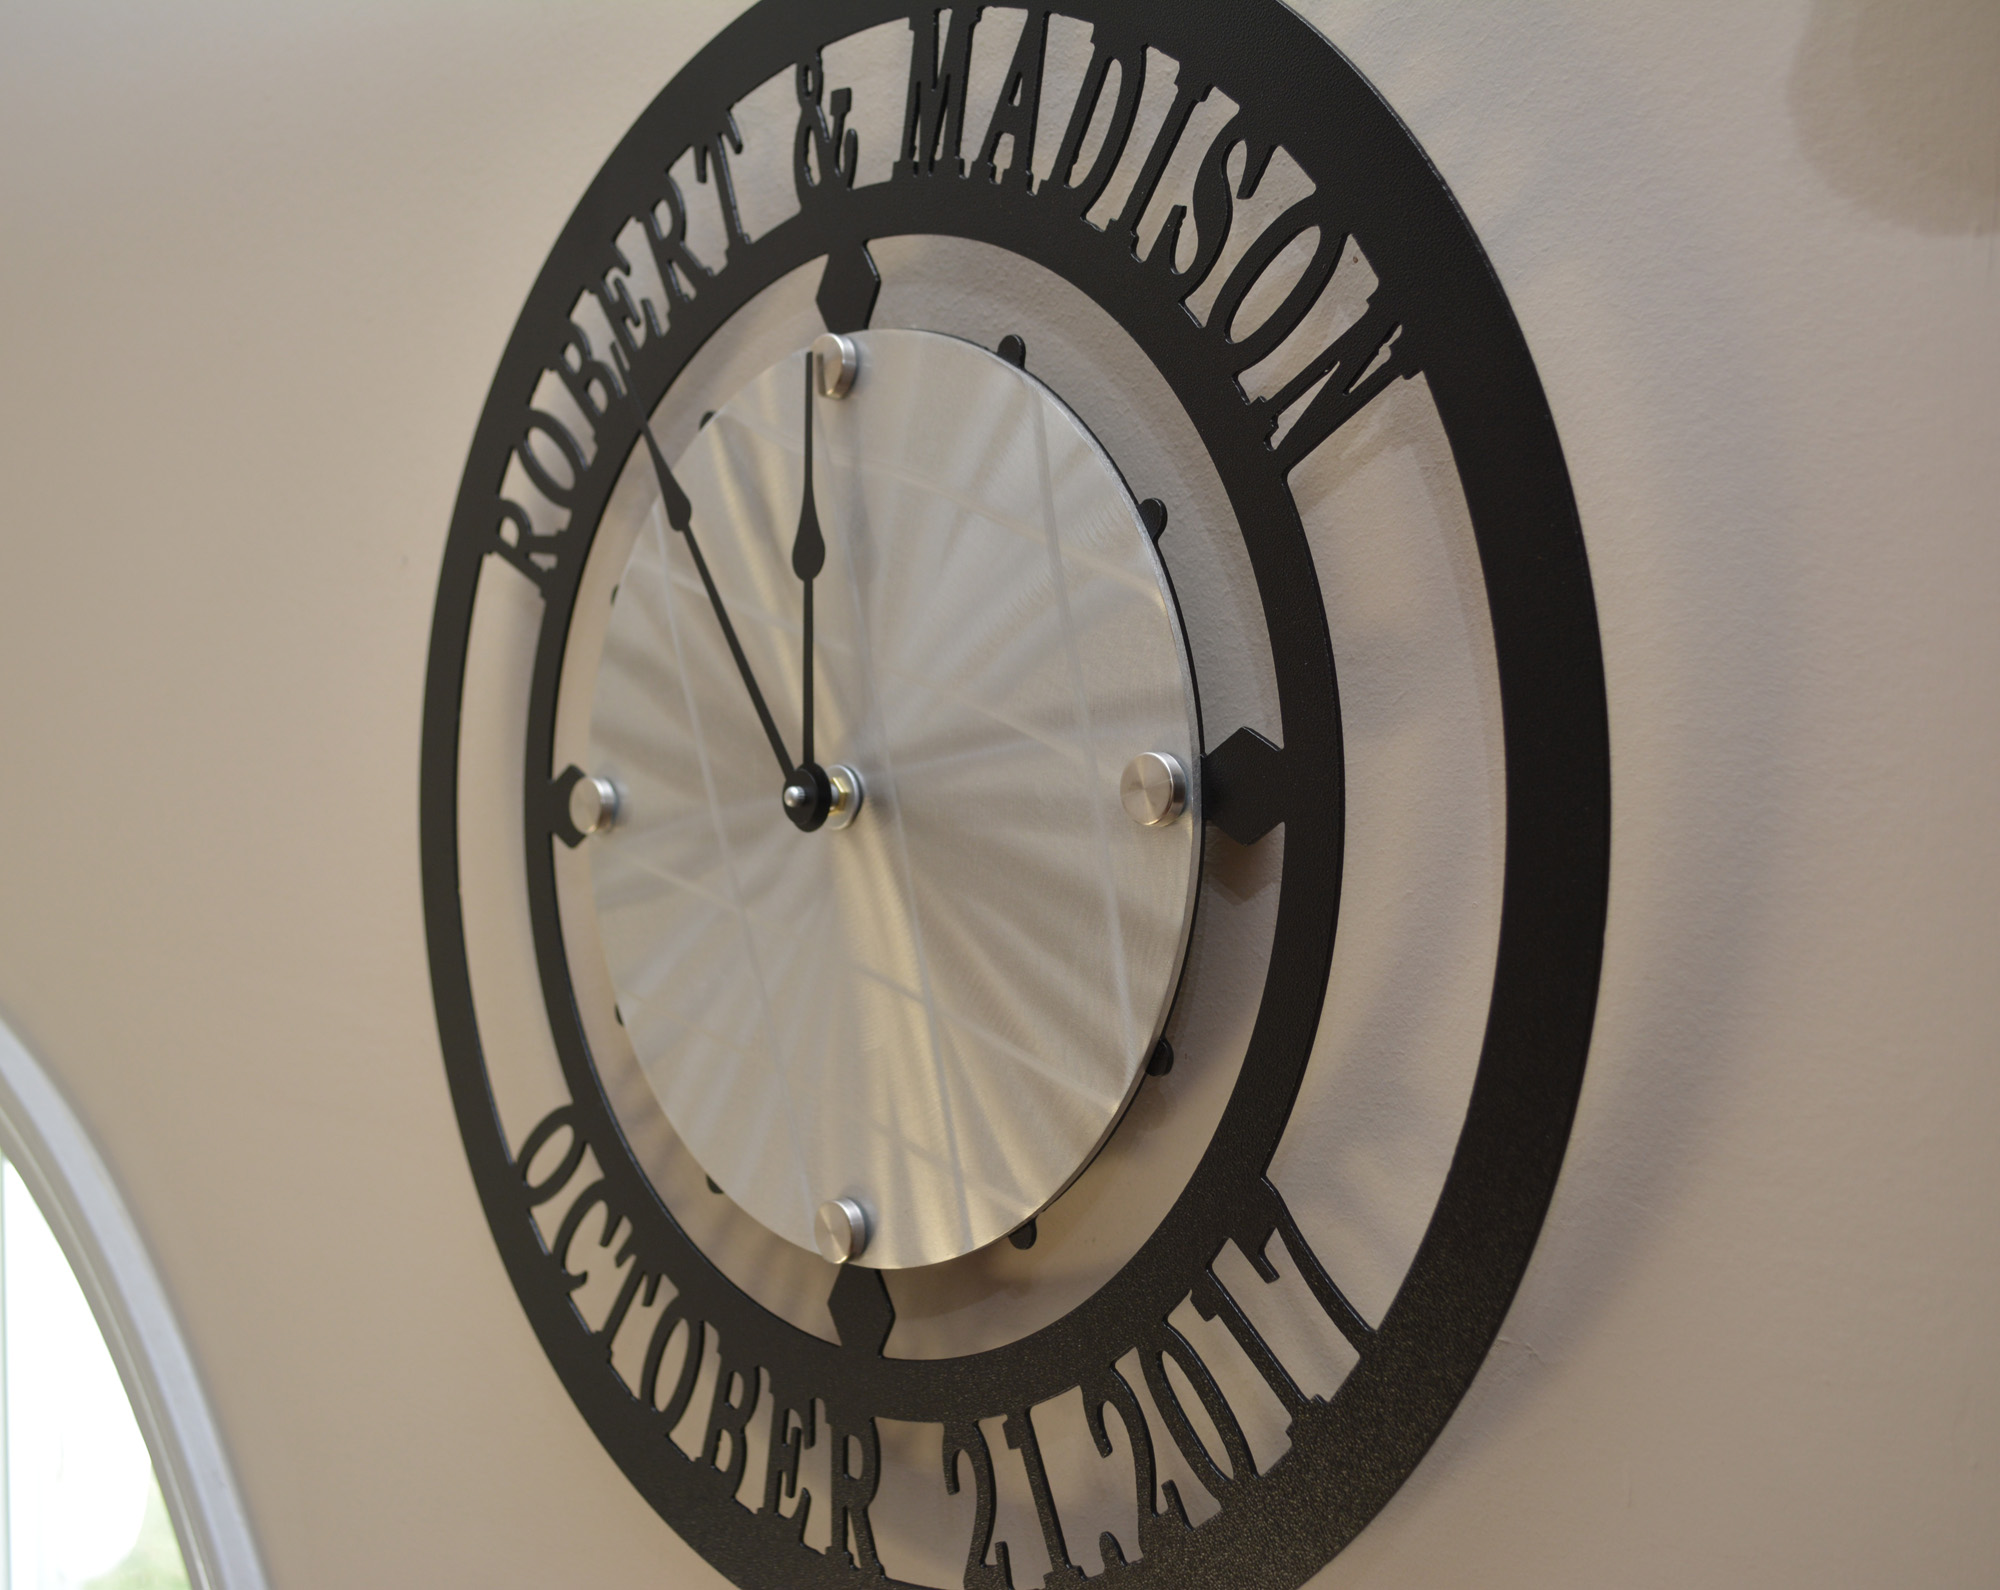 Custom Name And Established Date Wall Clock Clocks